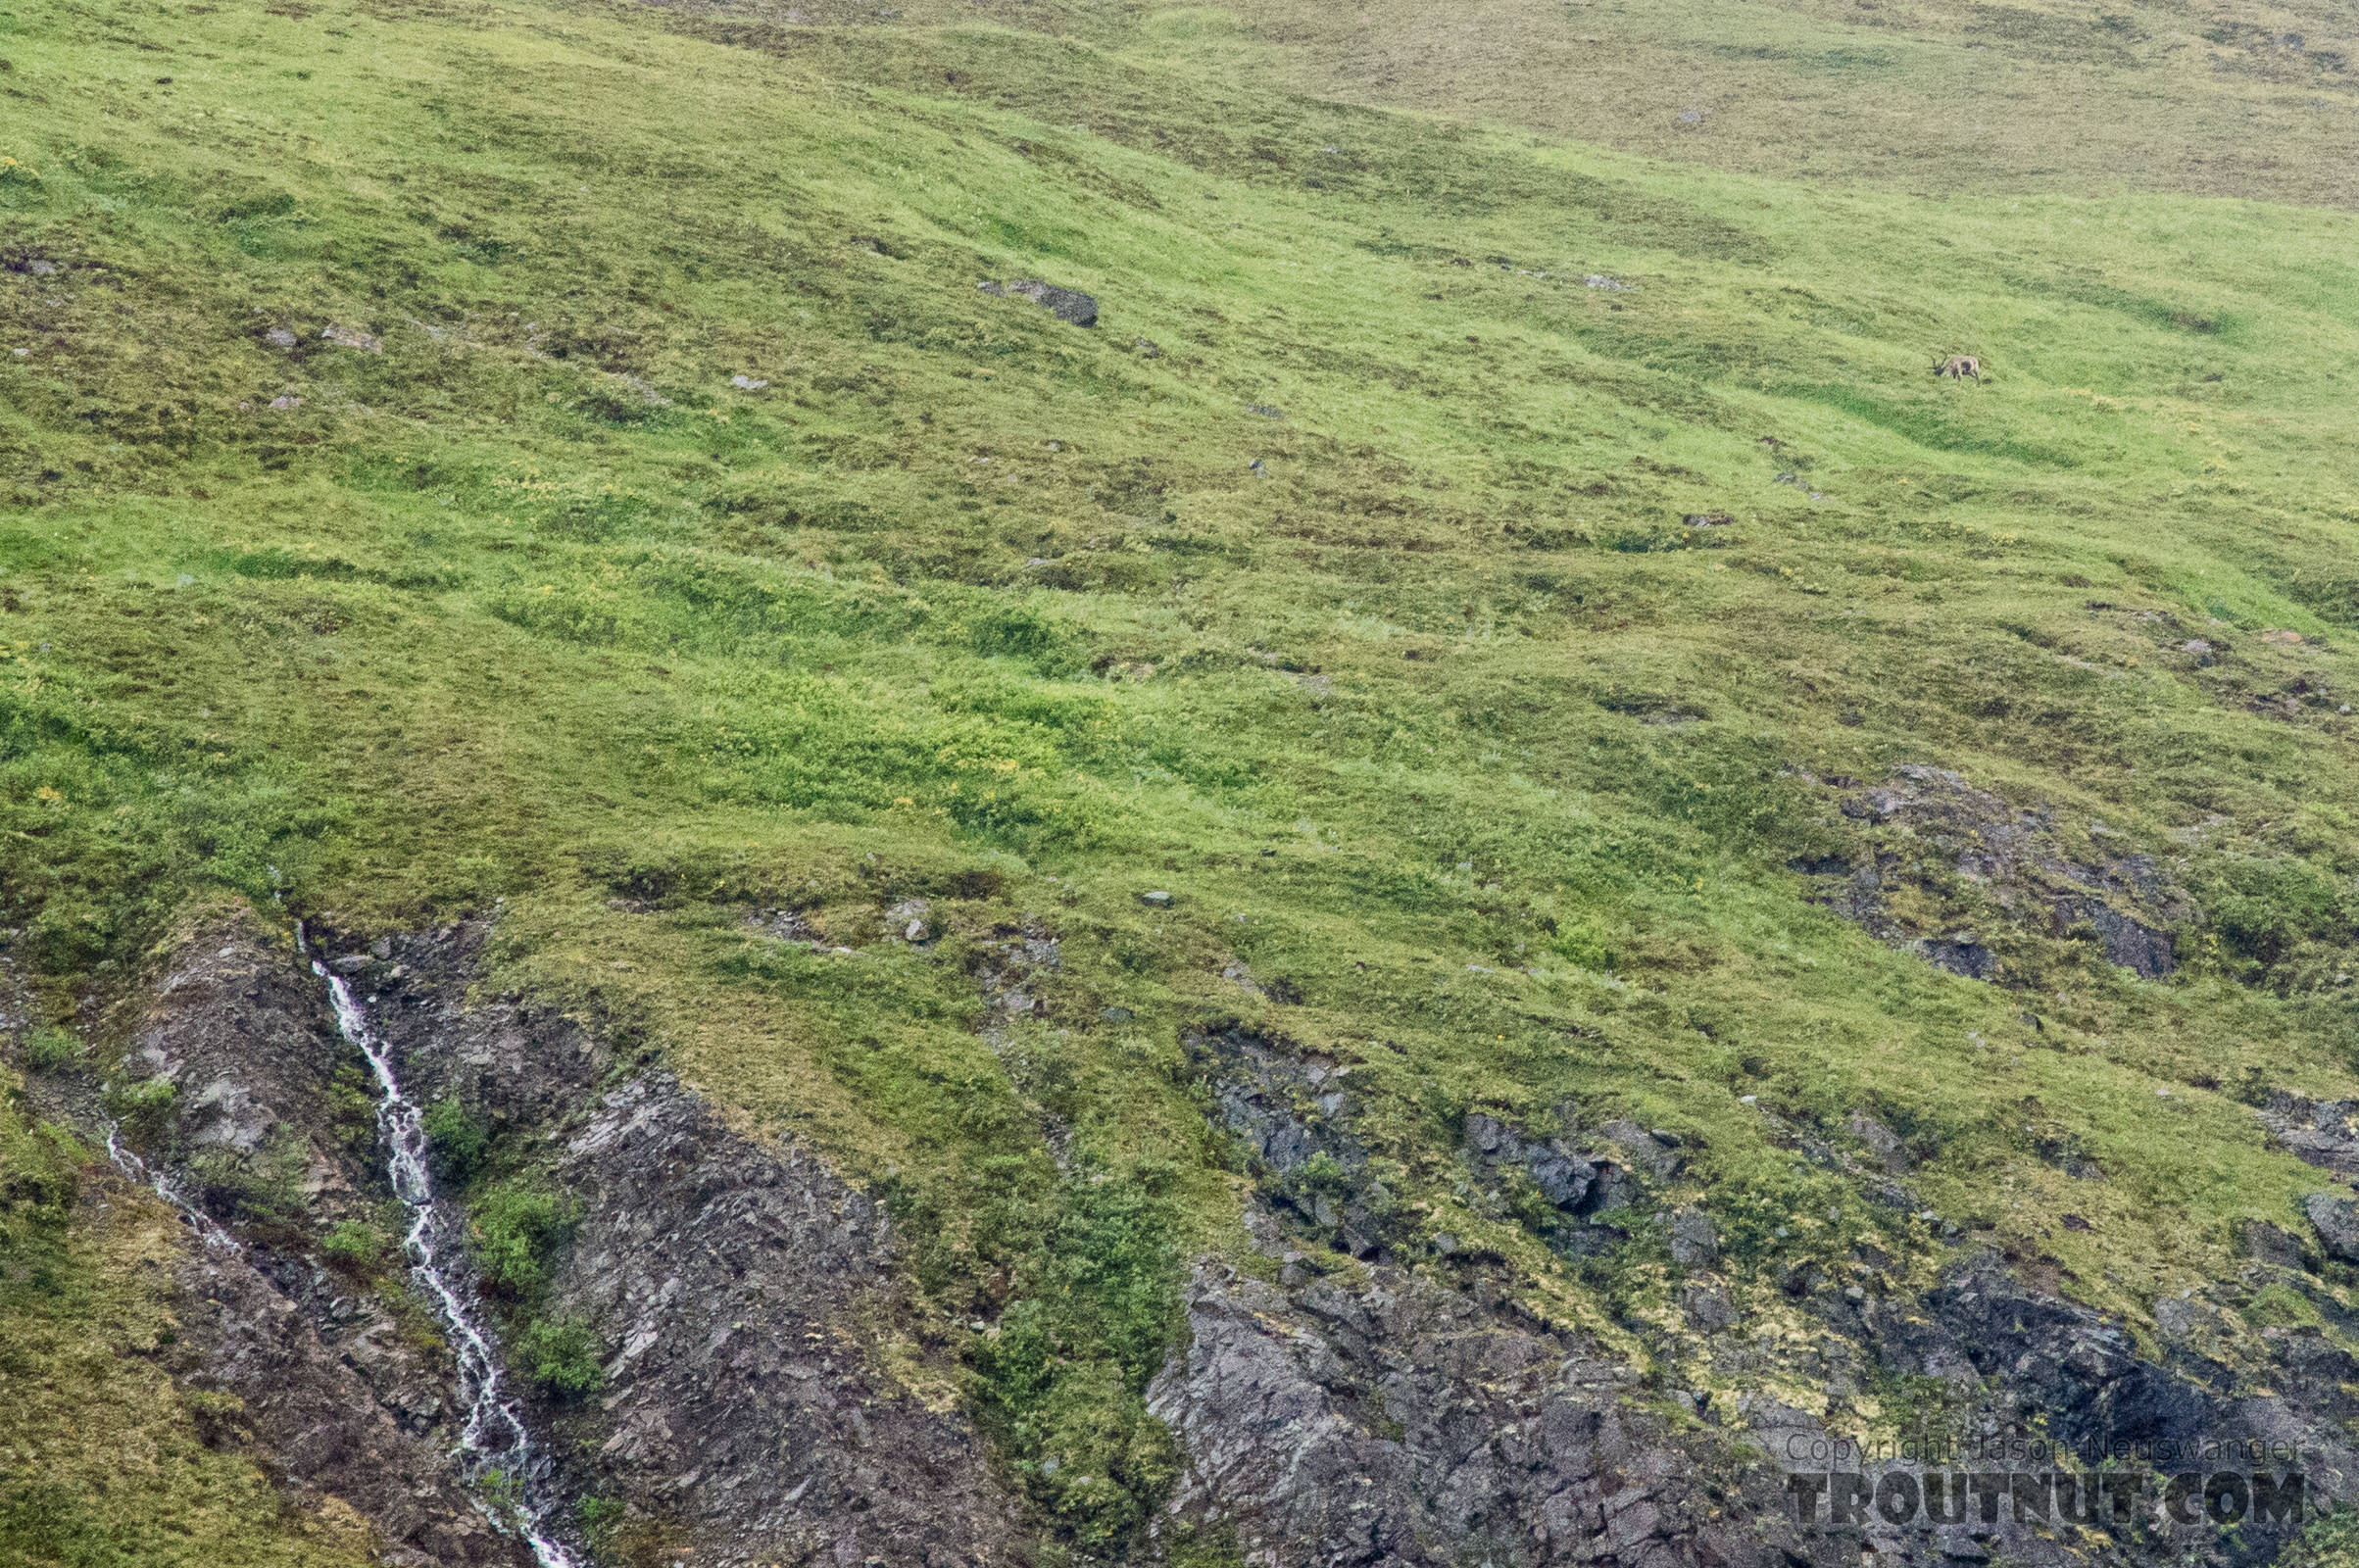 Lone bull caribou. This mid-sized bull is grazing in the upper right corner of this picture, in a high meadow above a cliff half-way up a mountain. From Clearwater Mountains in Alaska.